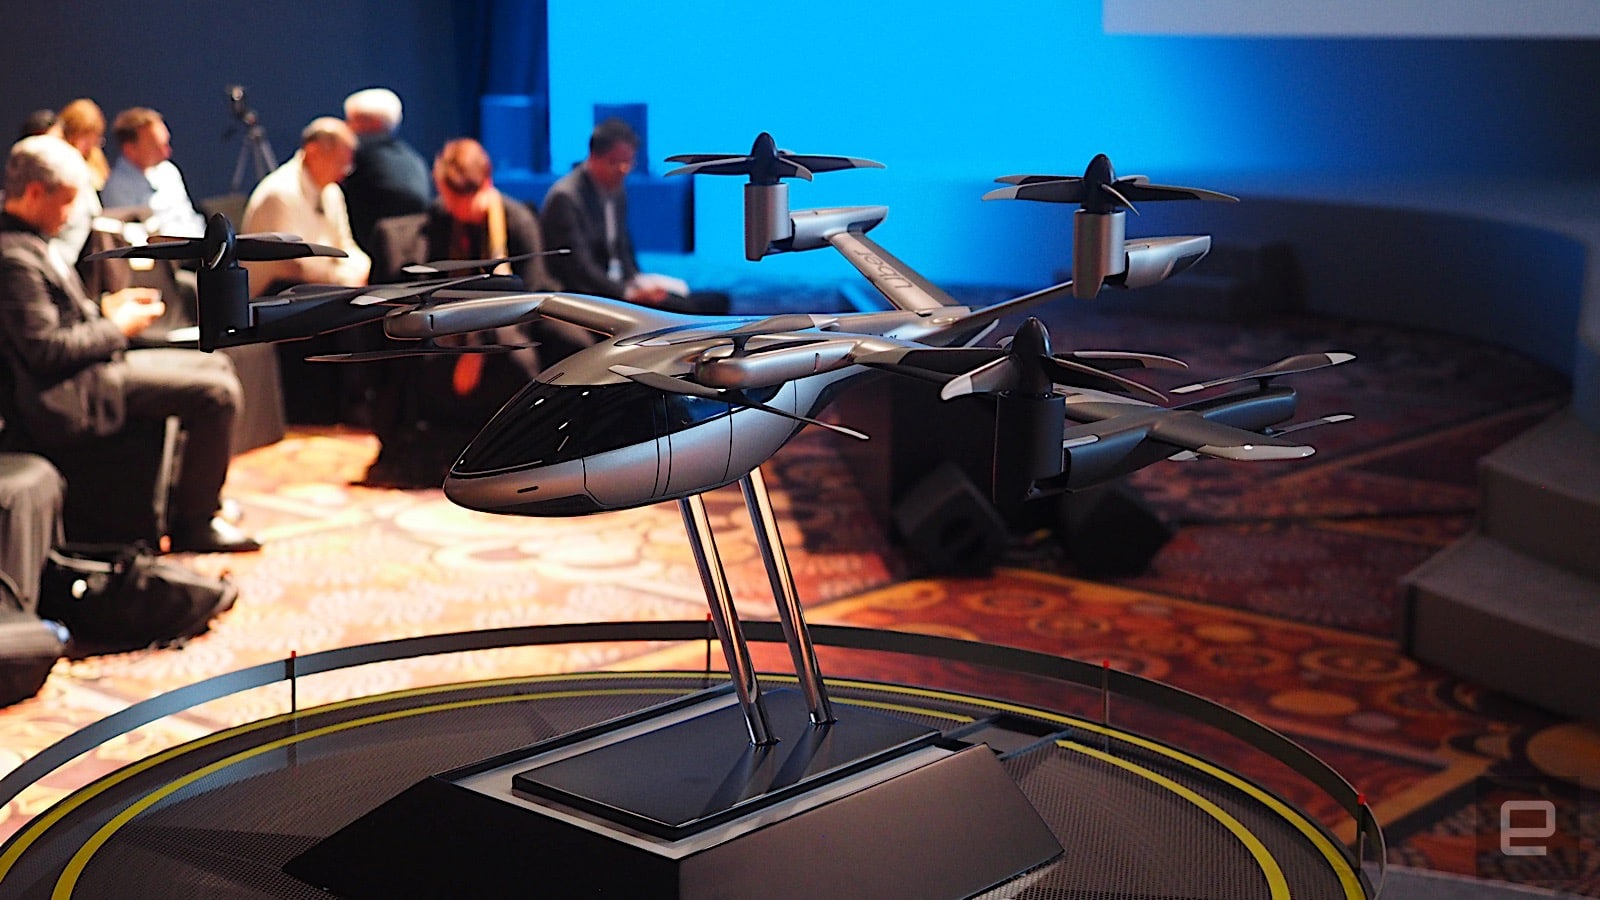 Hyundai and Uber show off their flying taxi concept